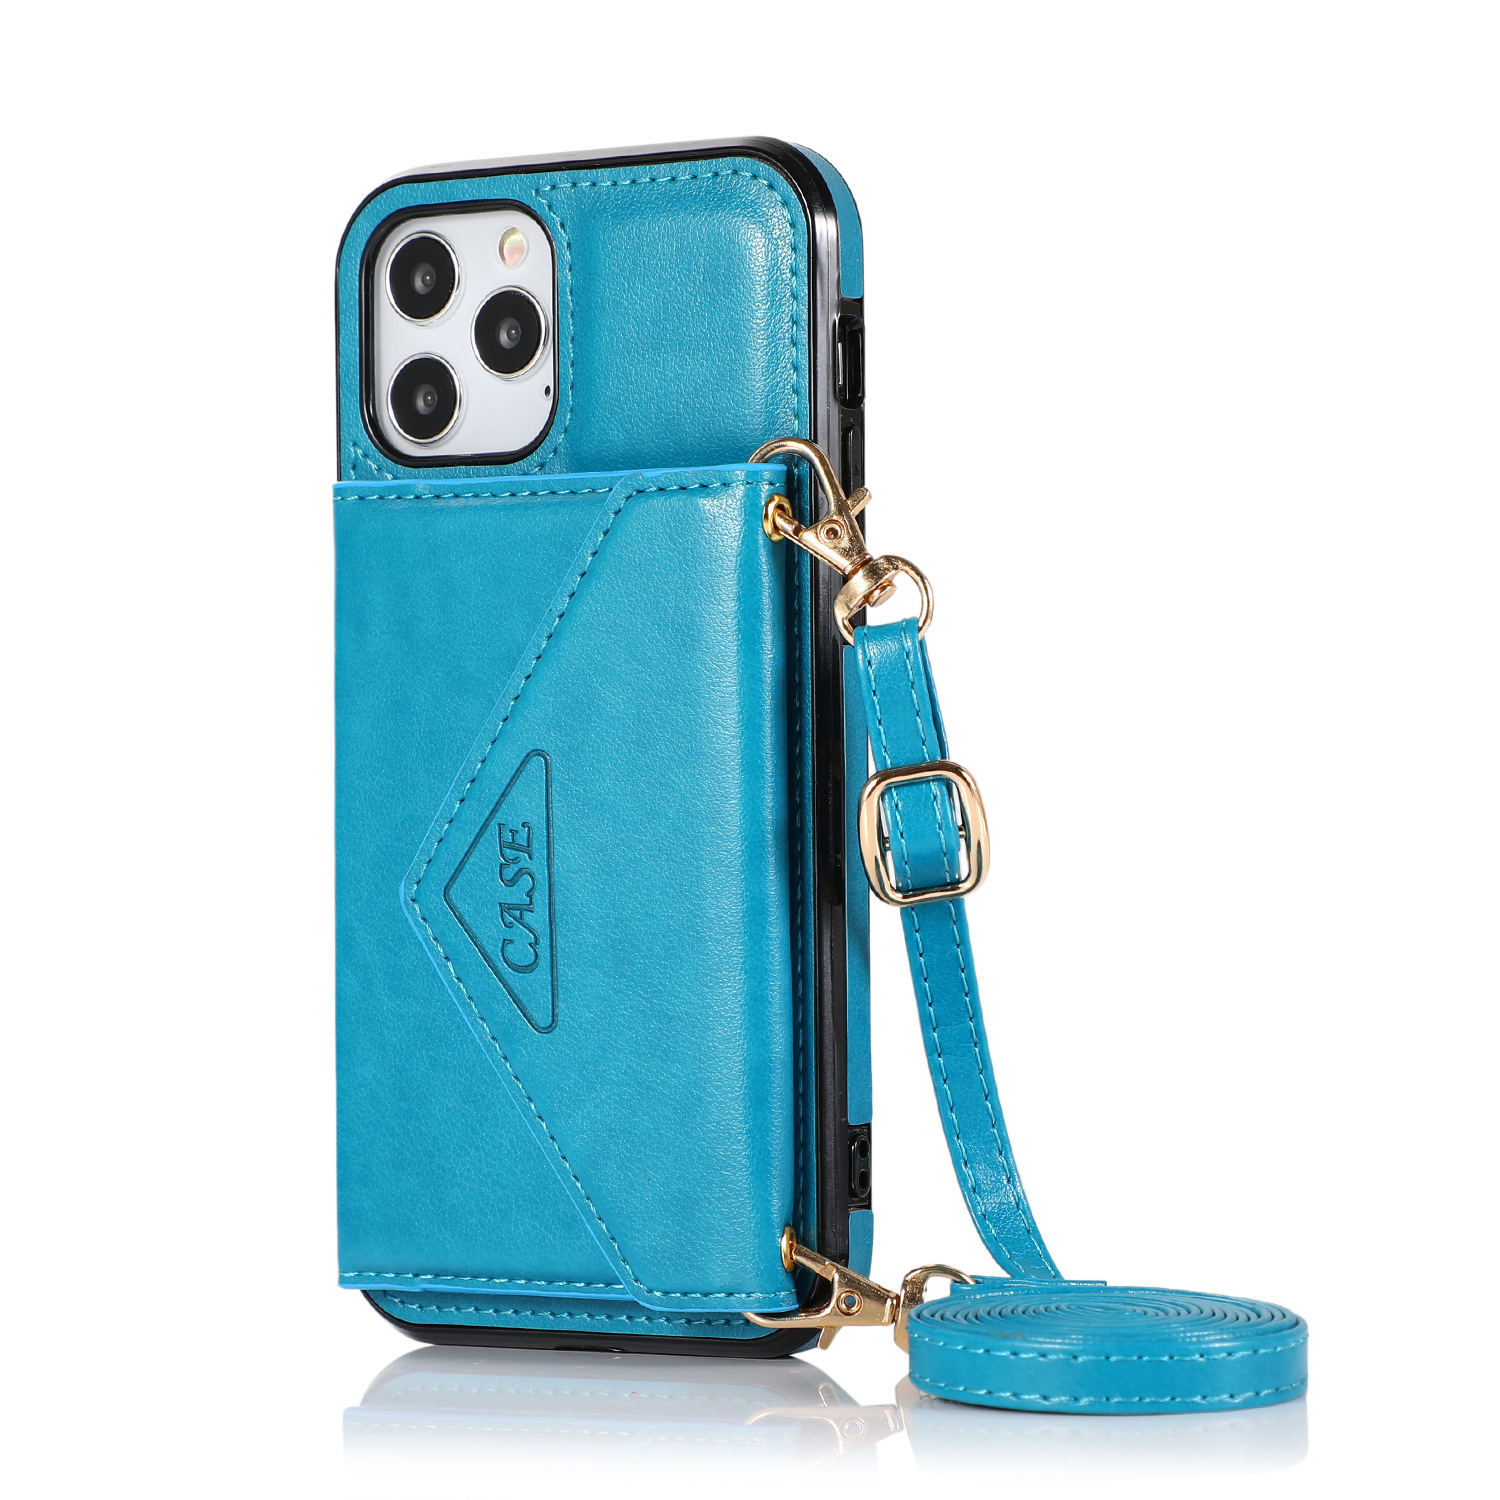 Mobile Phone Case Protective Case Cover For Iphone12/12 Pro Messenger Bag blue